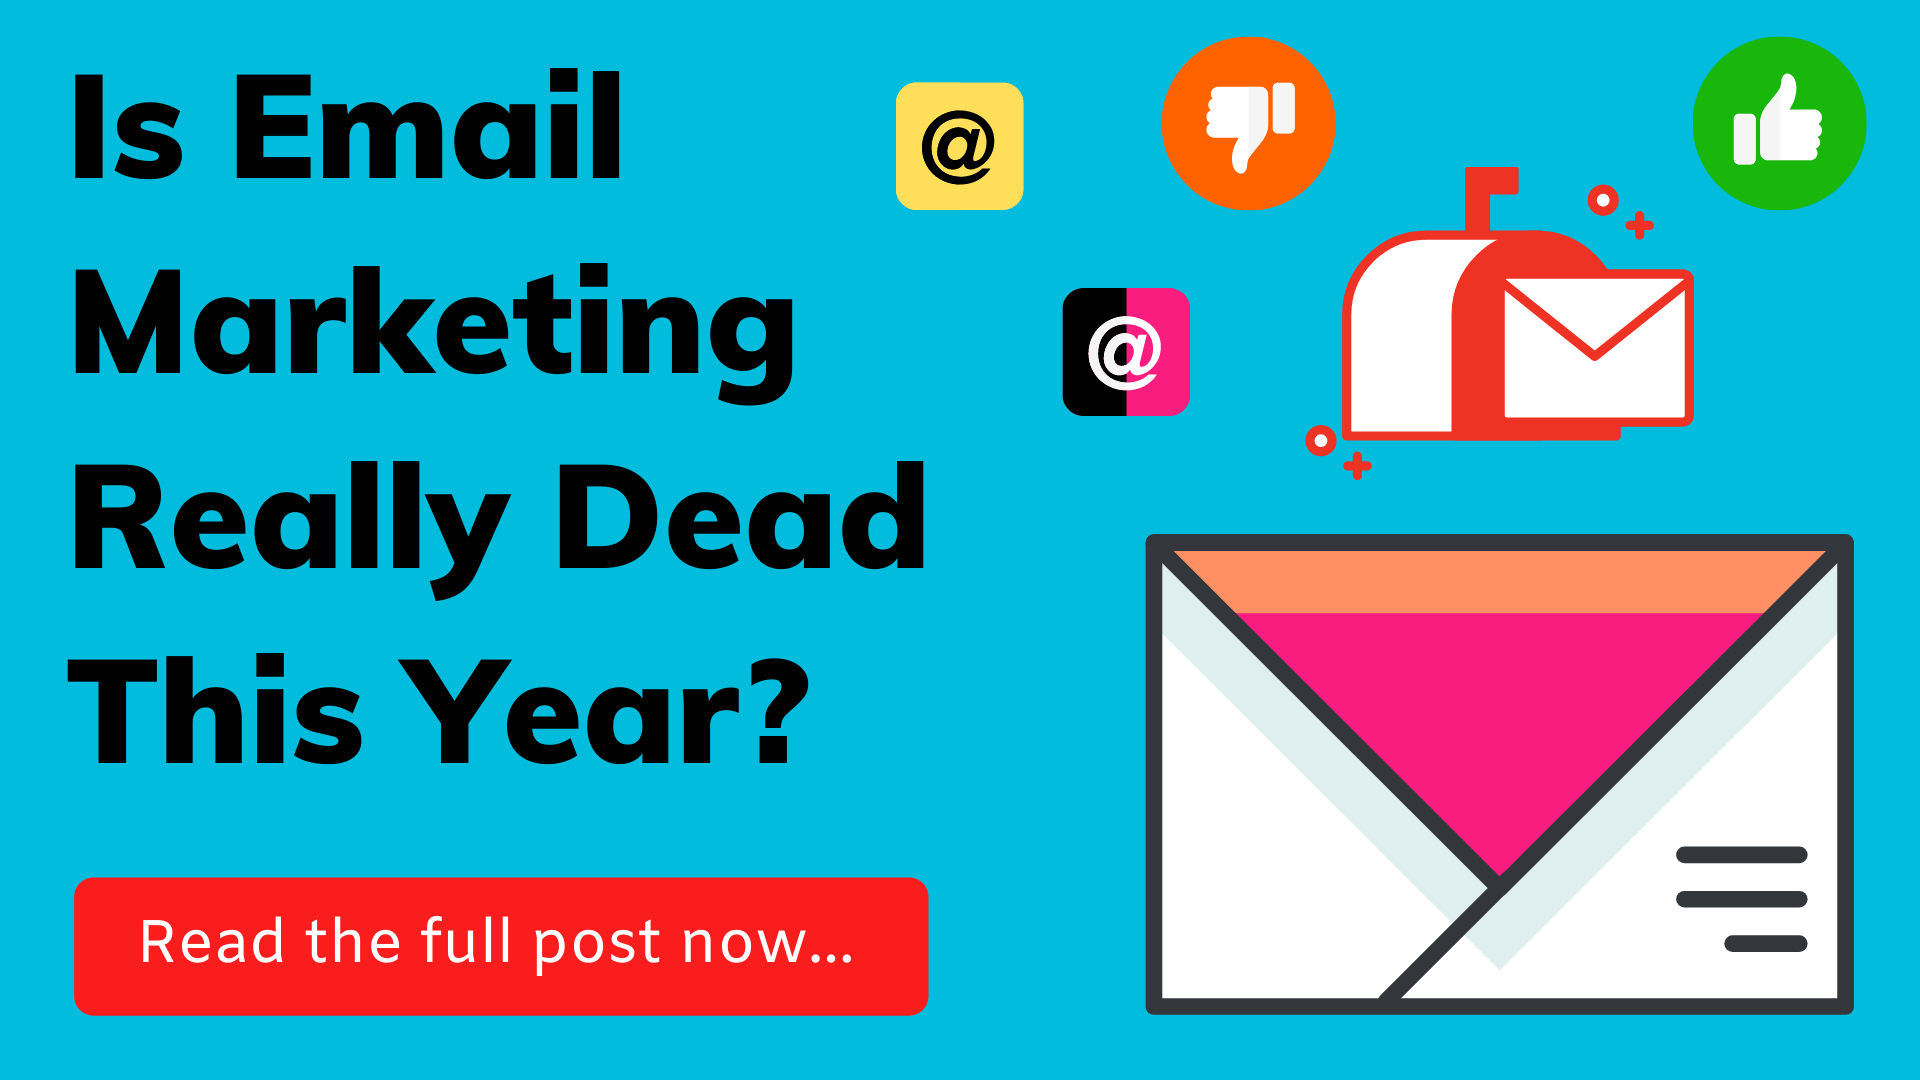 Is email marketing dead this year